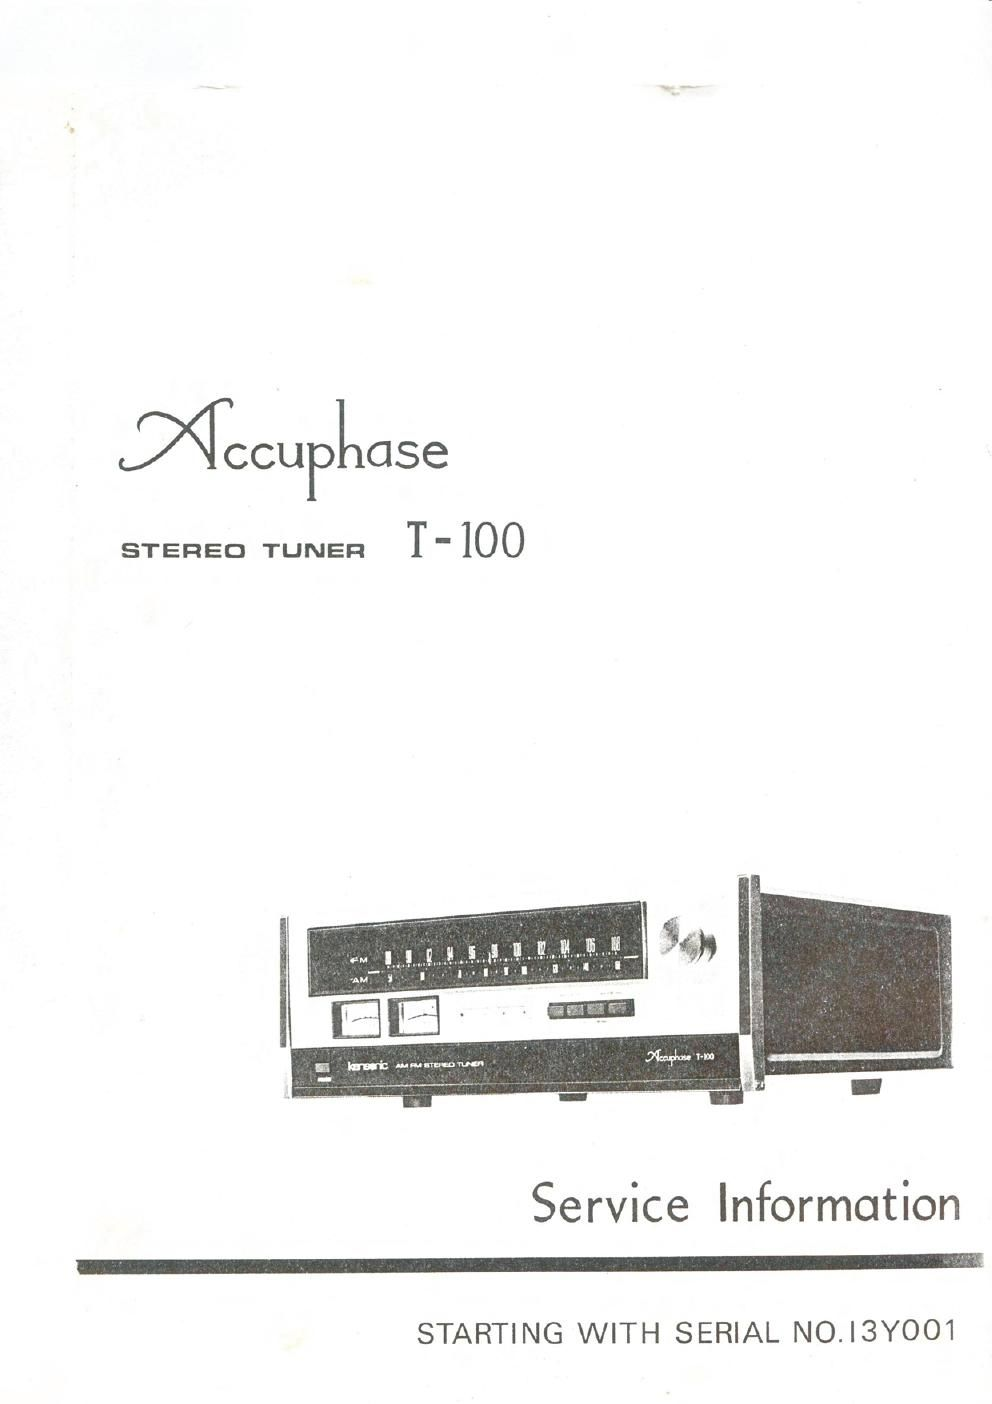 Accuphase T100 tun servicemanual